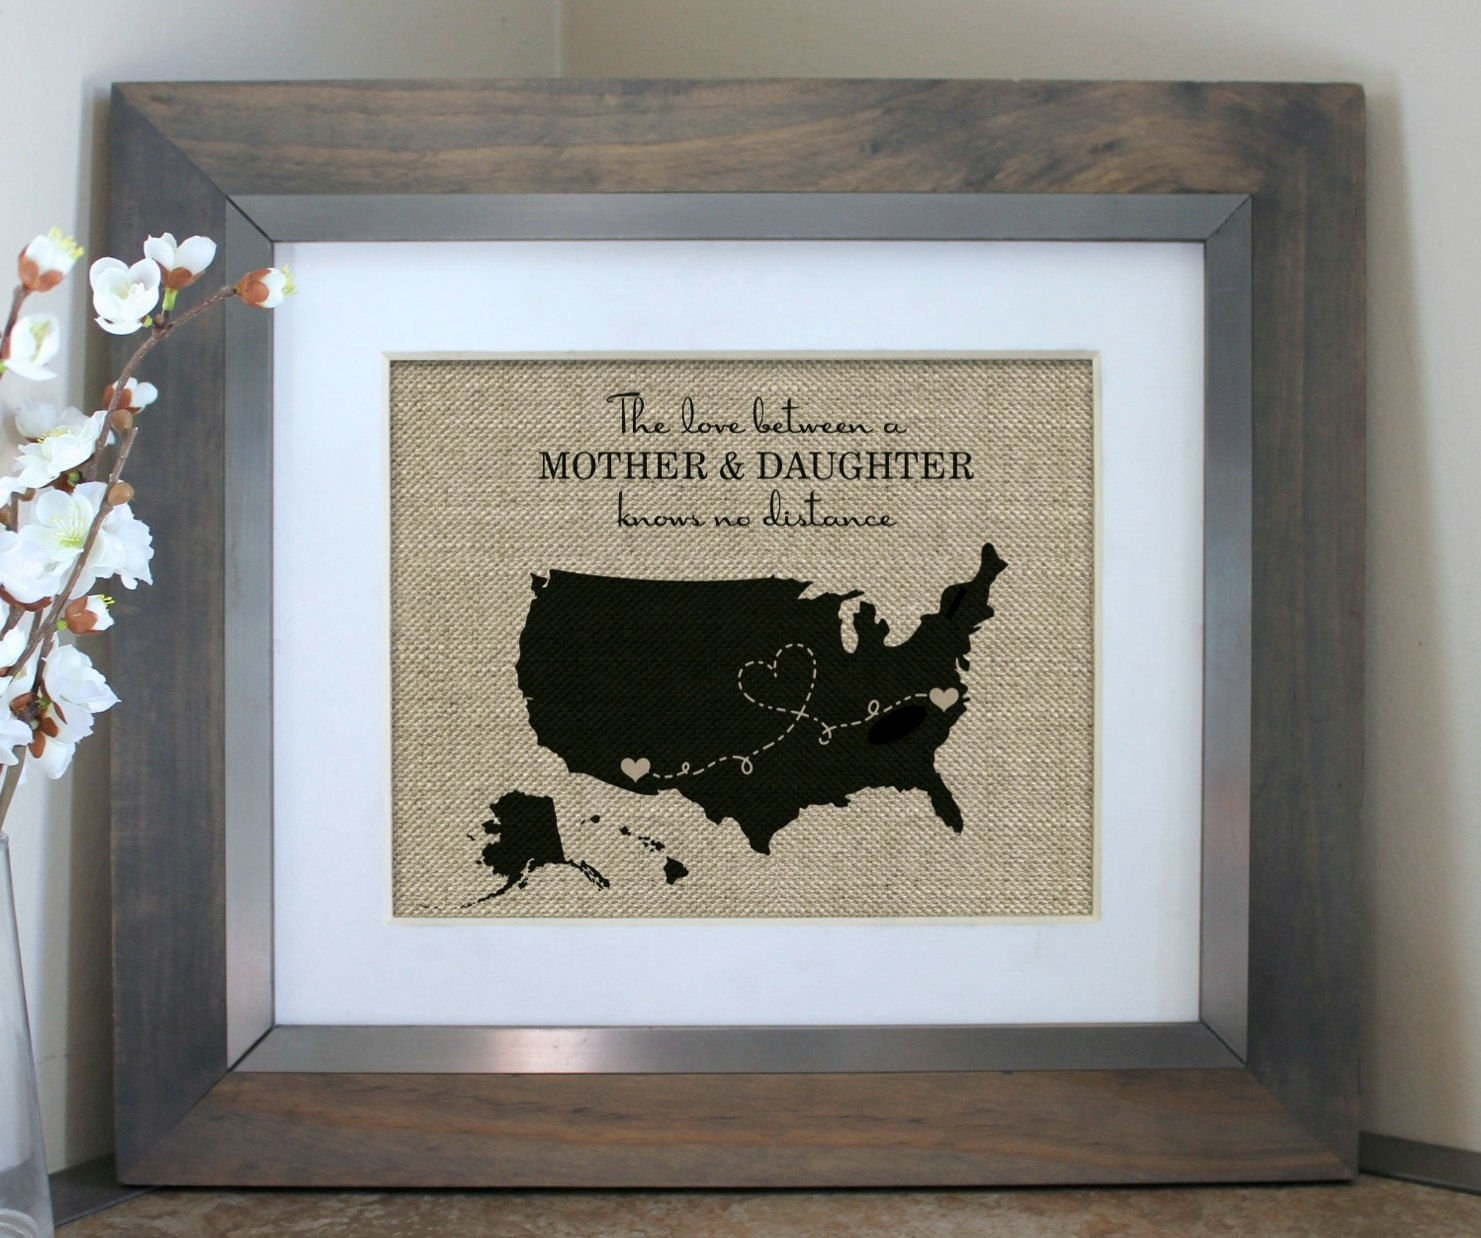 framed print of U.S. map with a line between two locations that are marked with hearts